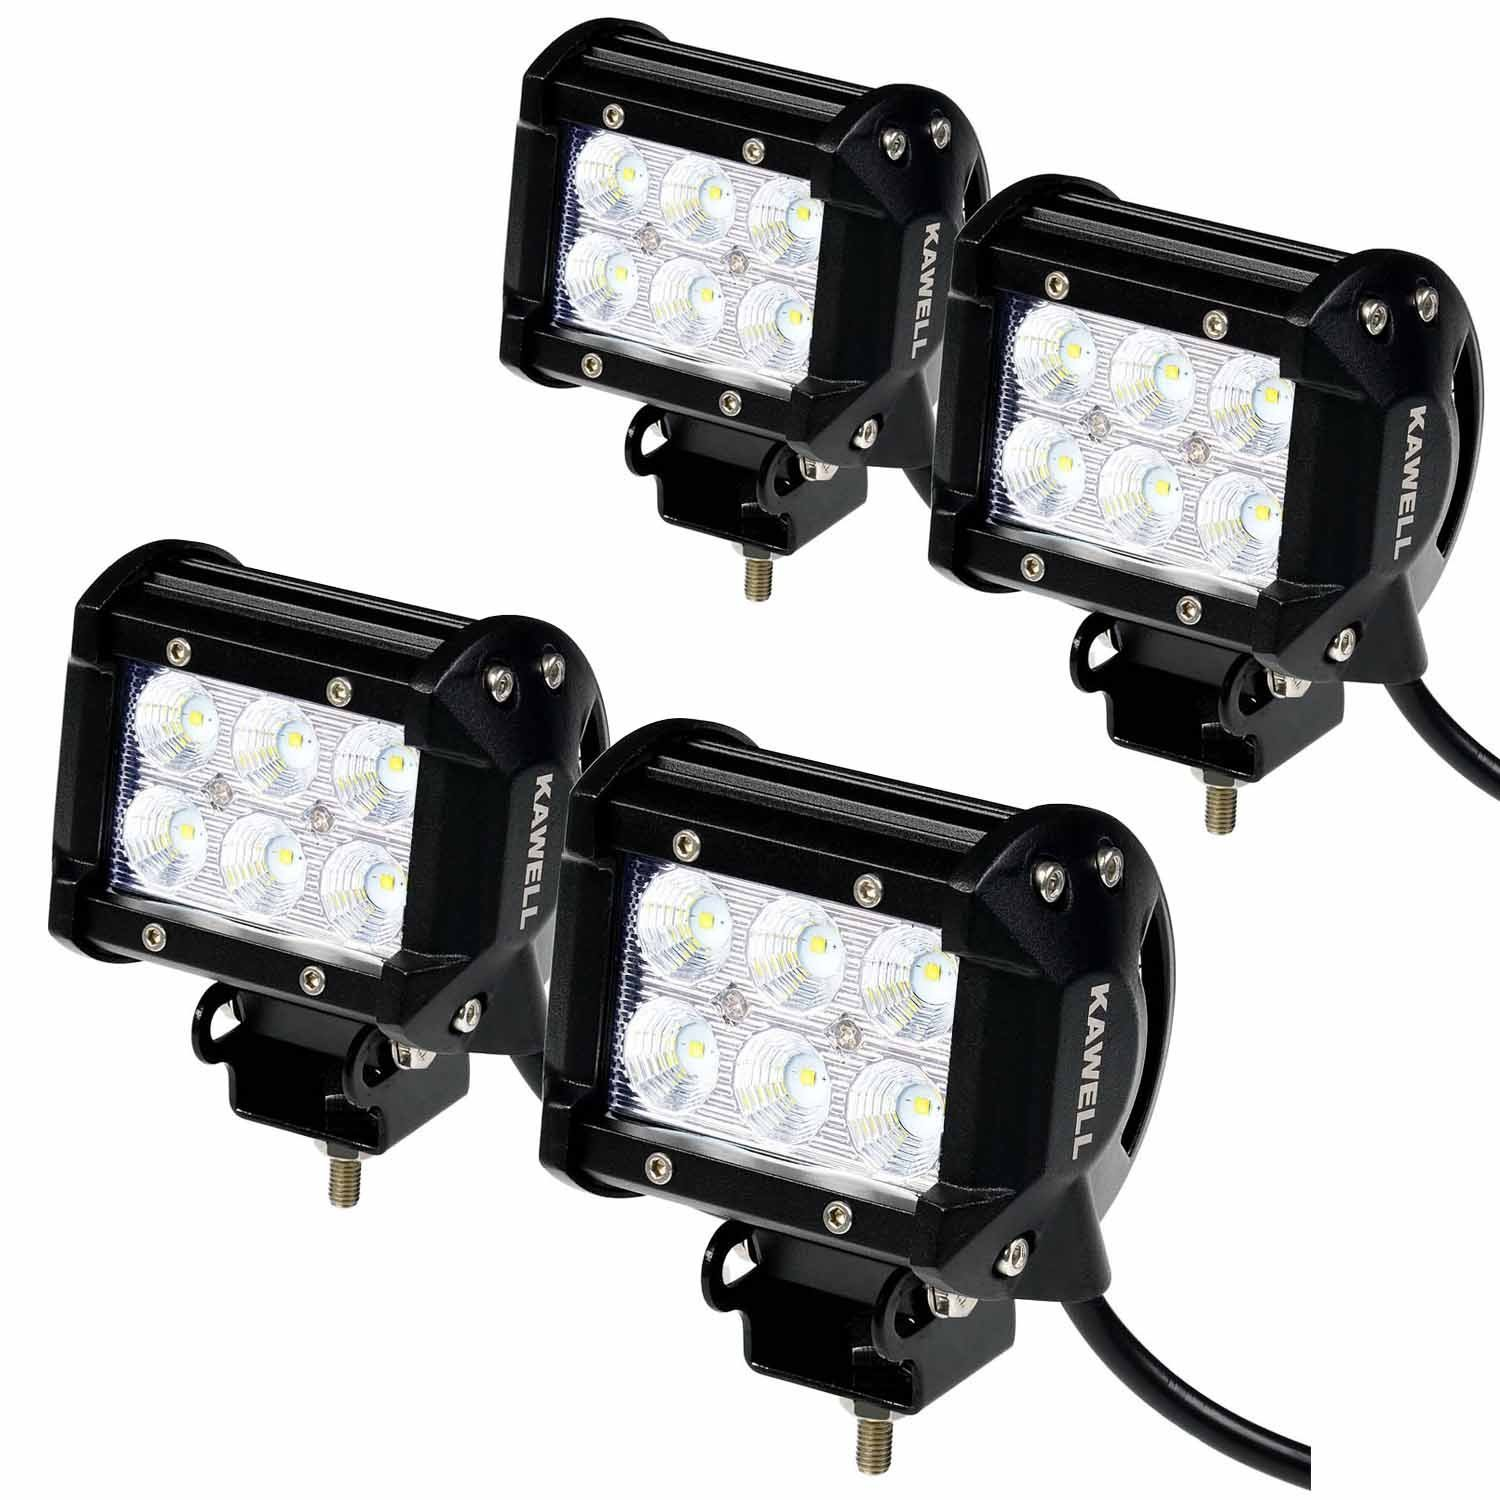 Kawell 4pcs 4 18w Cree Led Work Light Bar Flood Beam 60 Car Blue Red Rocker Switch Wiring Harness With 40a Relay Degree Waterproof For Off Road Truck Atv Suv Jeep Boat 4wd Auxiliary Driving